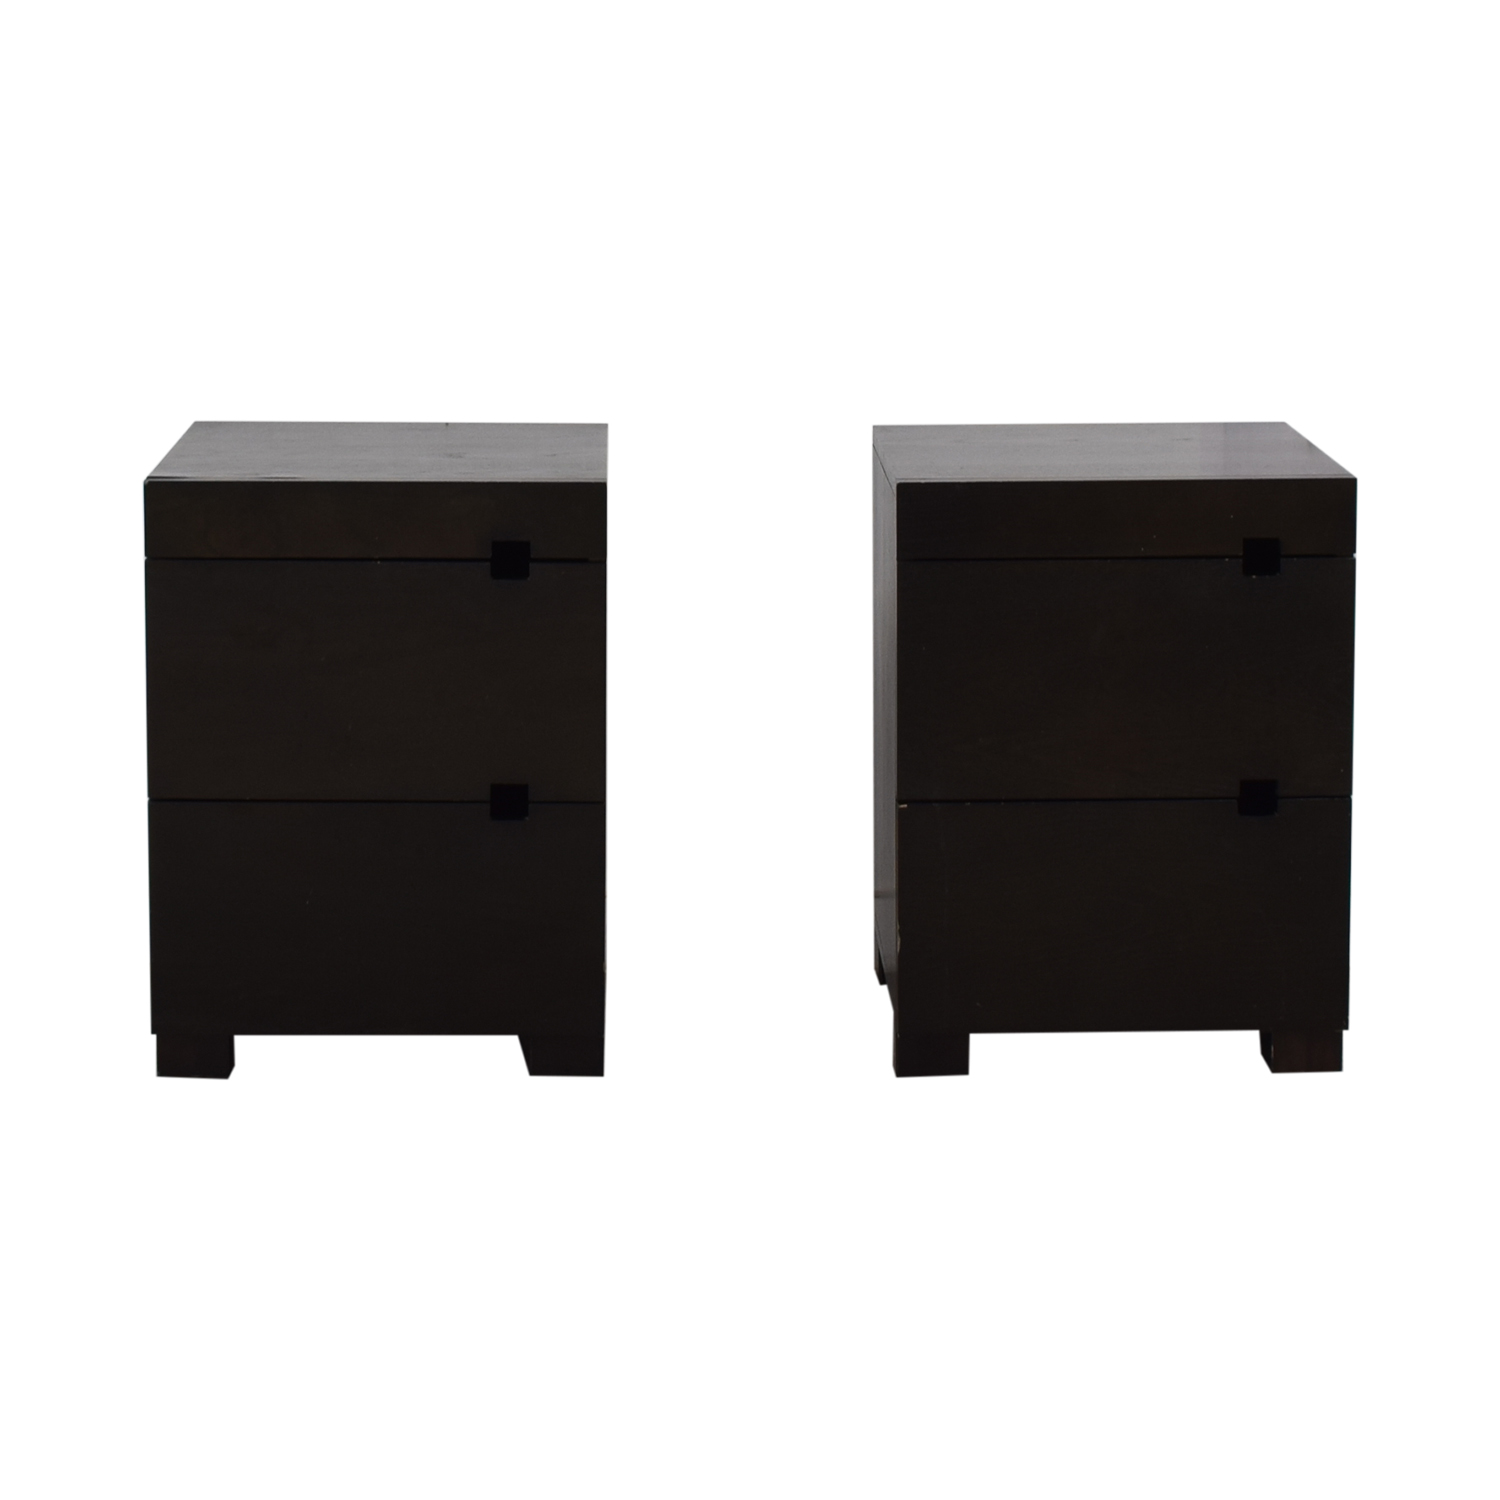 West Elm West Elm Square Cutout Chocolate-Stained Veneer Nightstands price